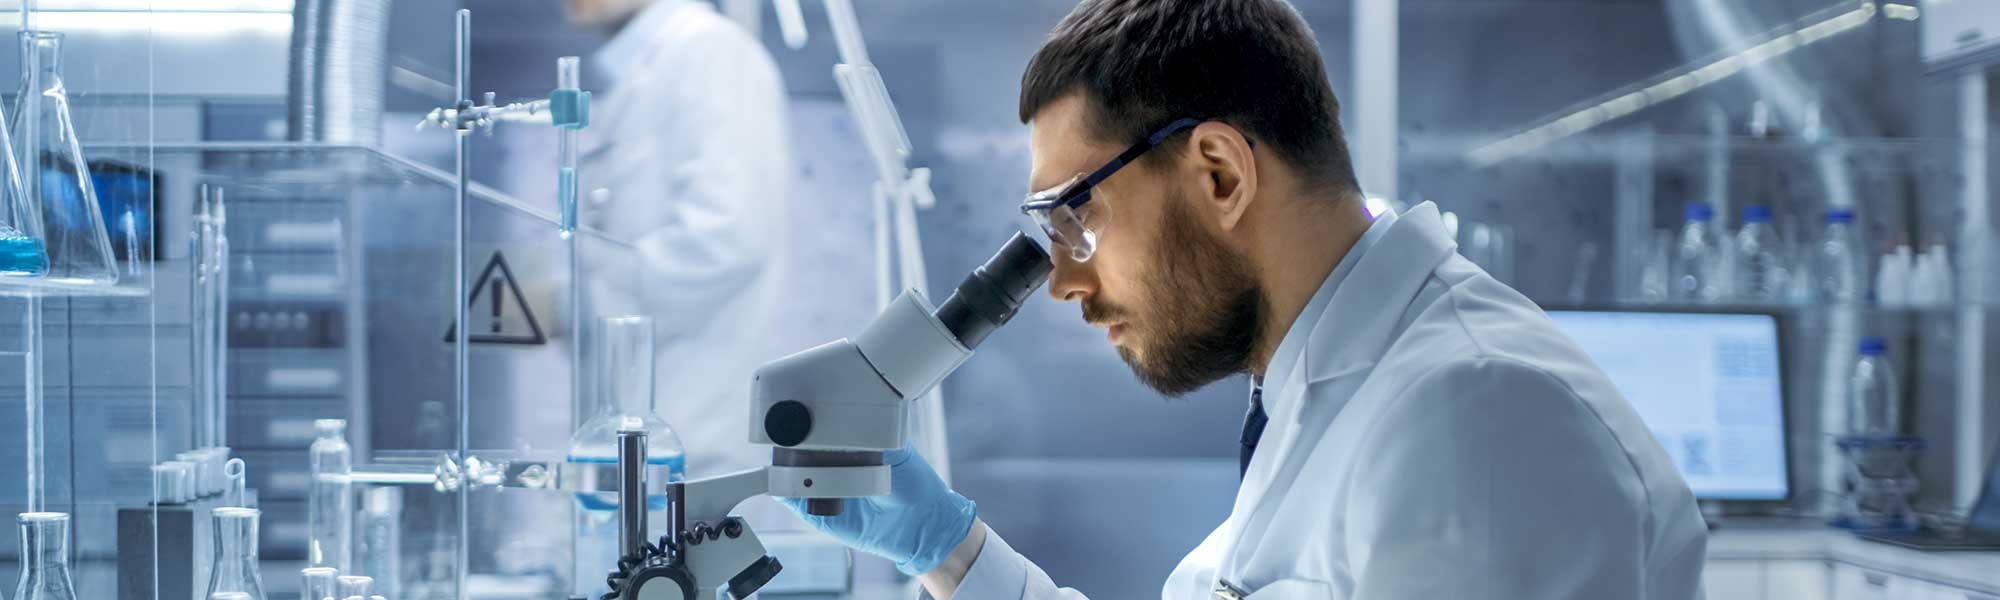 In a Modern Laboaratory Research Scientist Examines substance under microscope